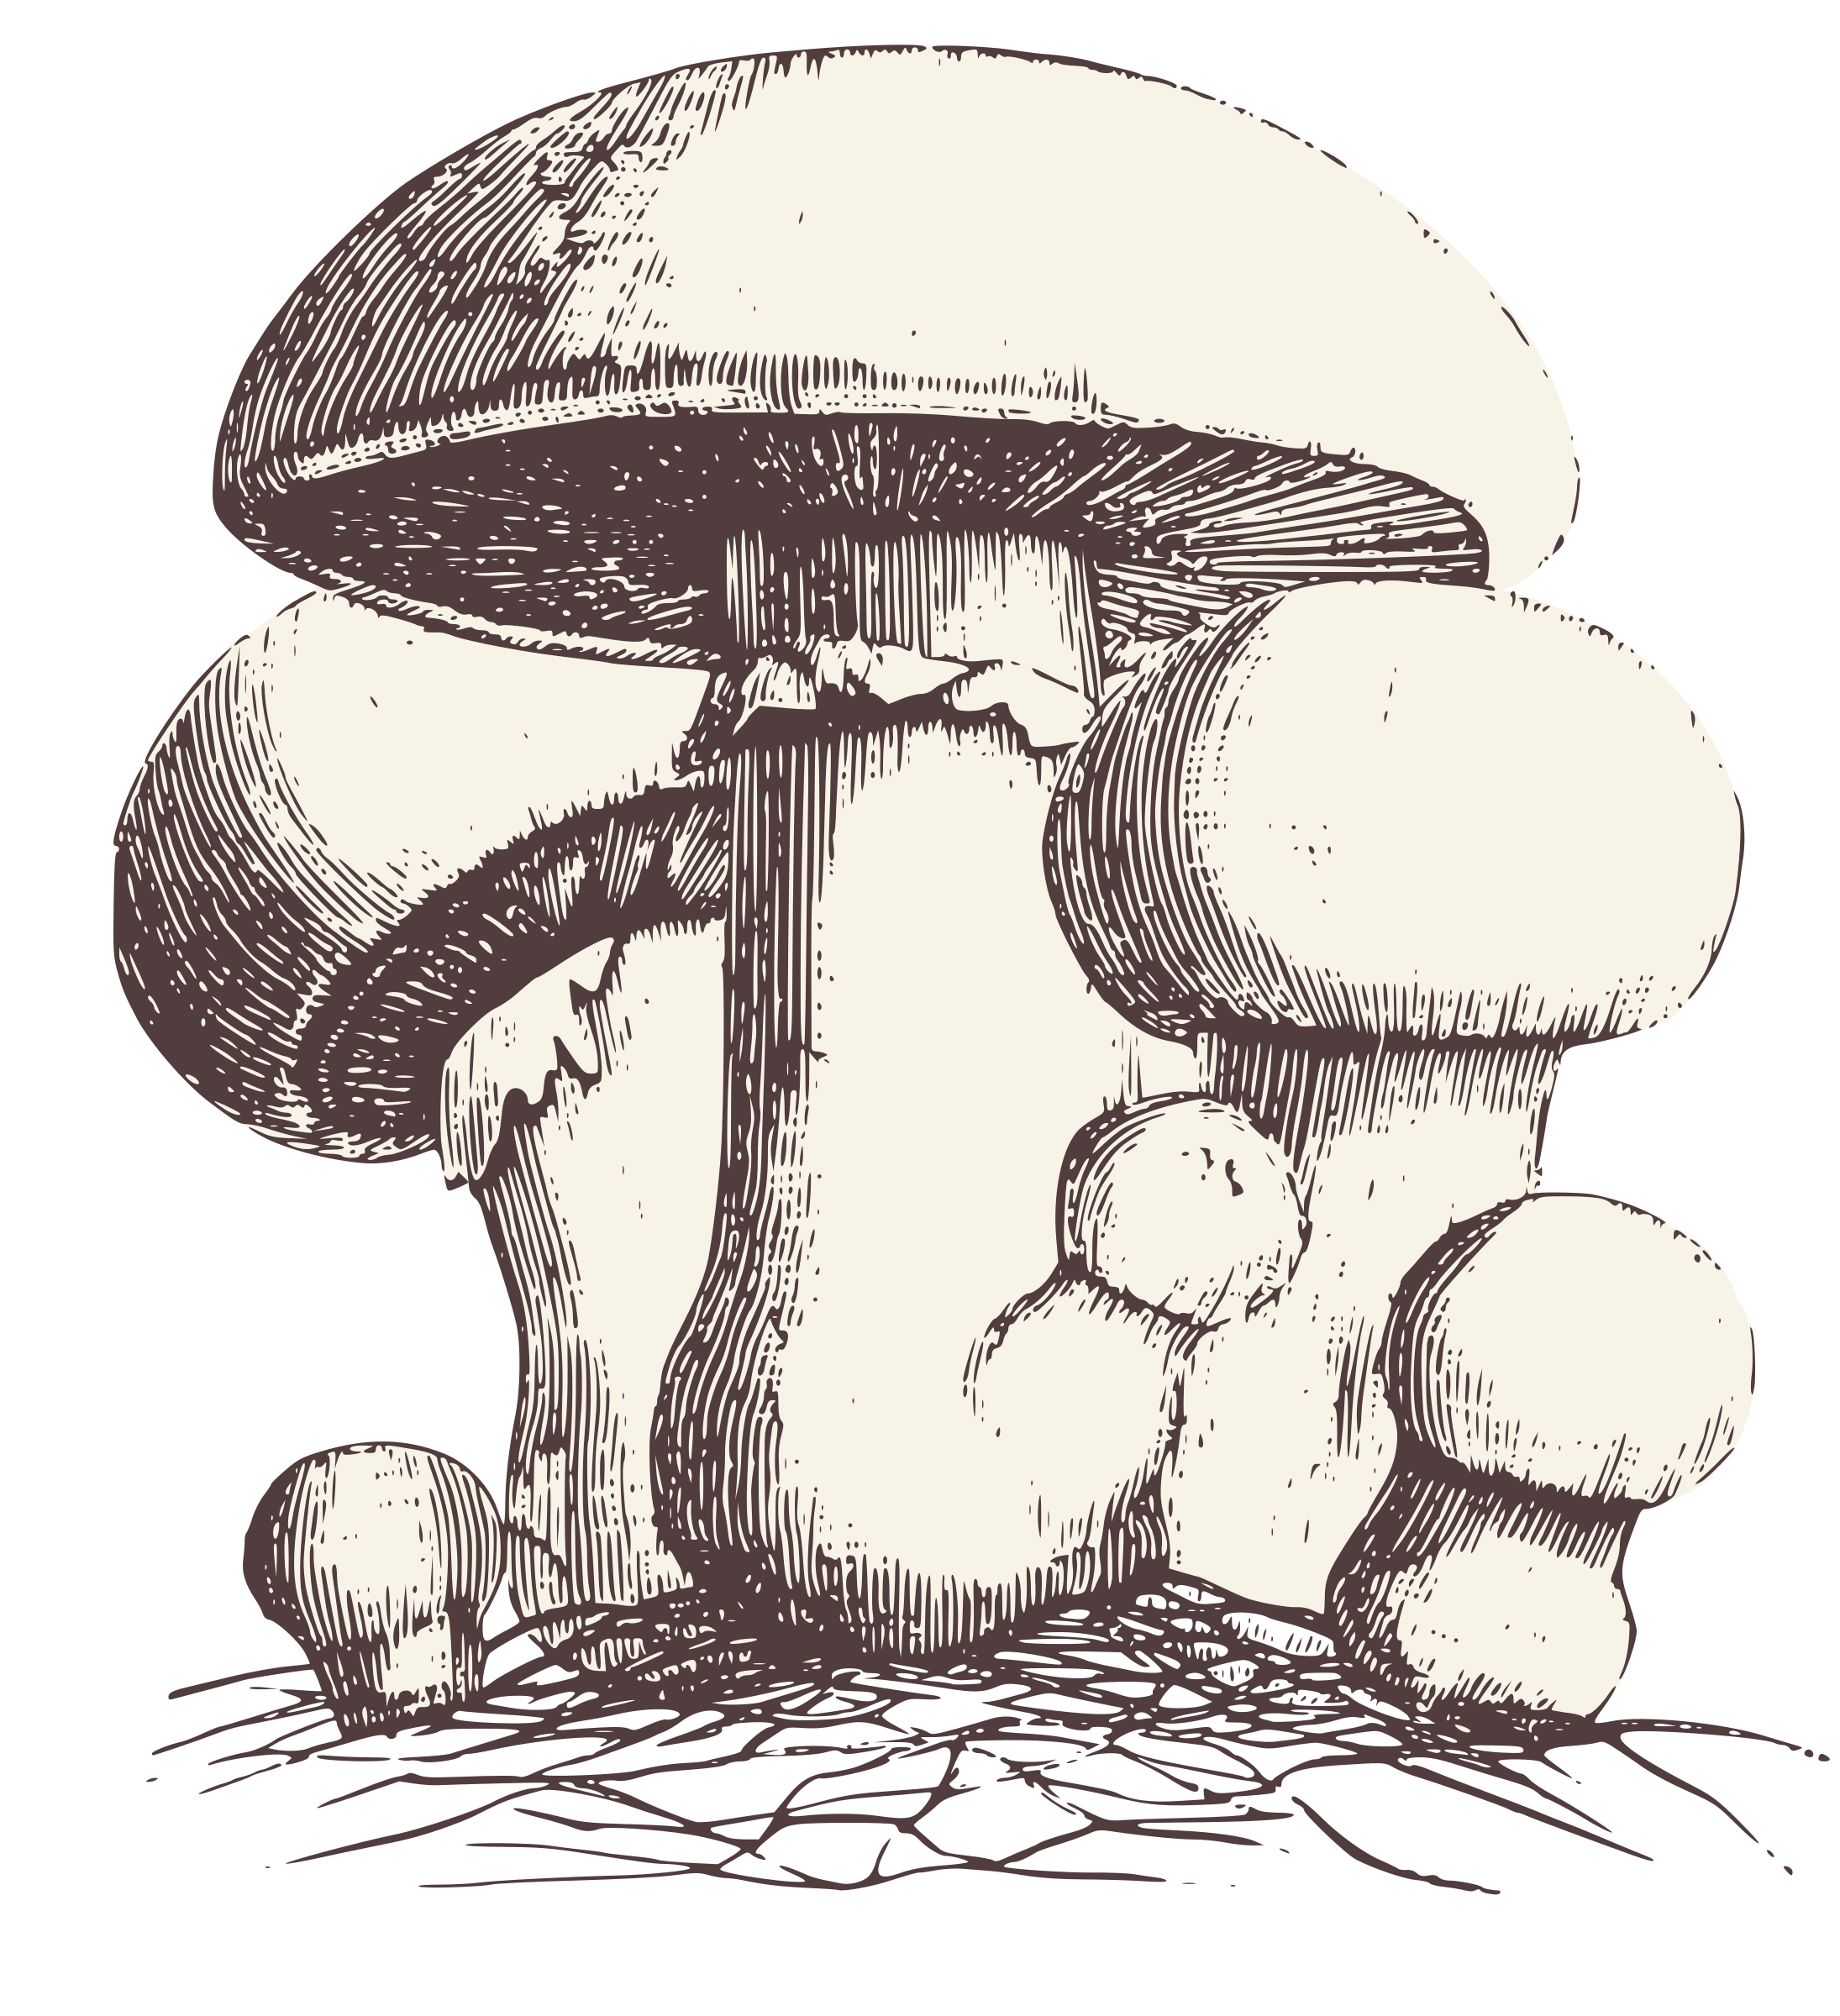 Common Meadow Mushroom by ohsoniftyvintagegraphics